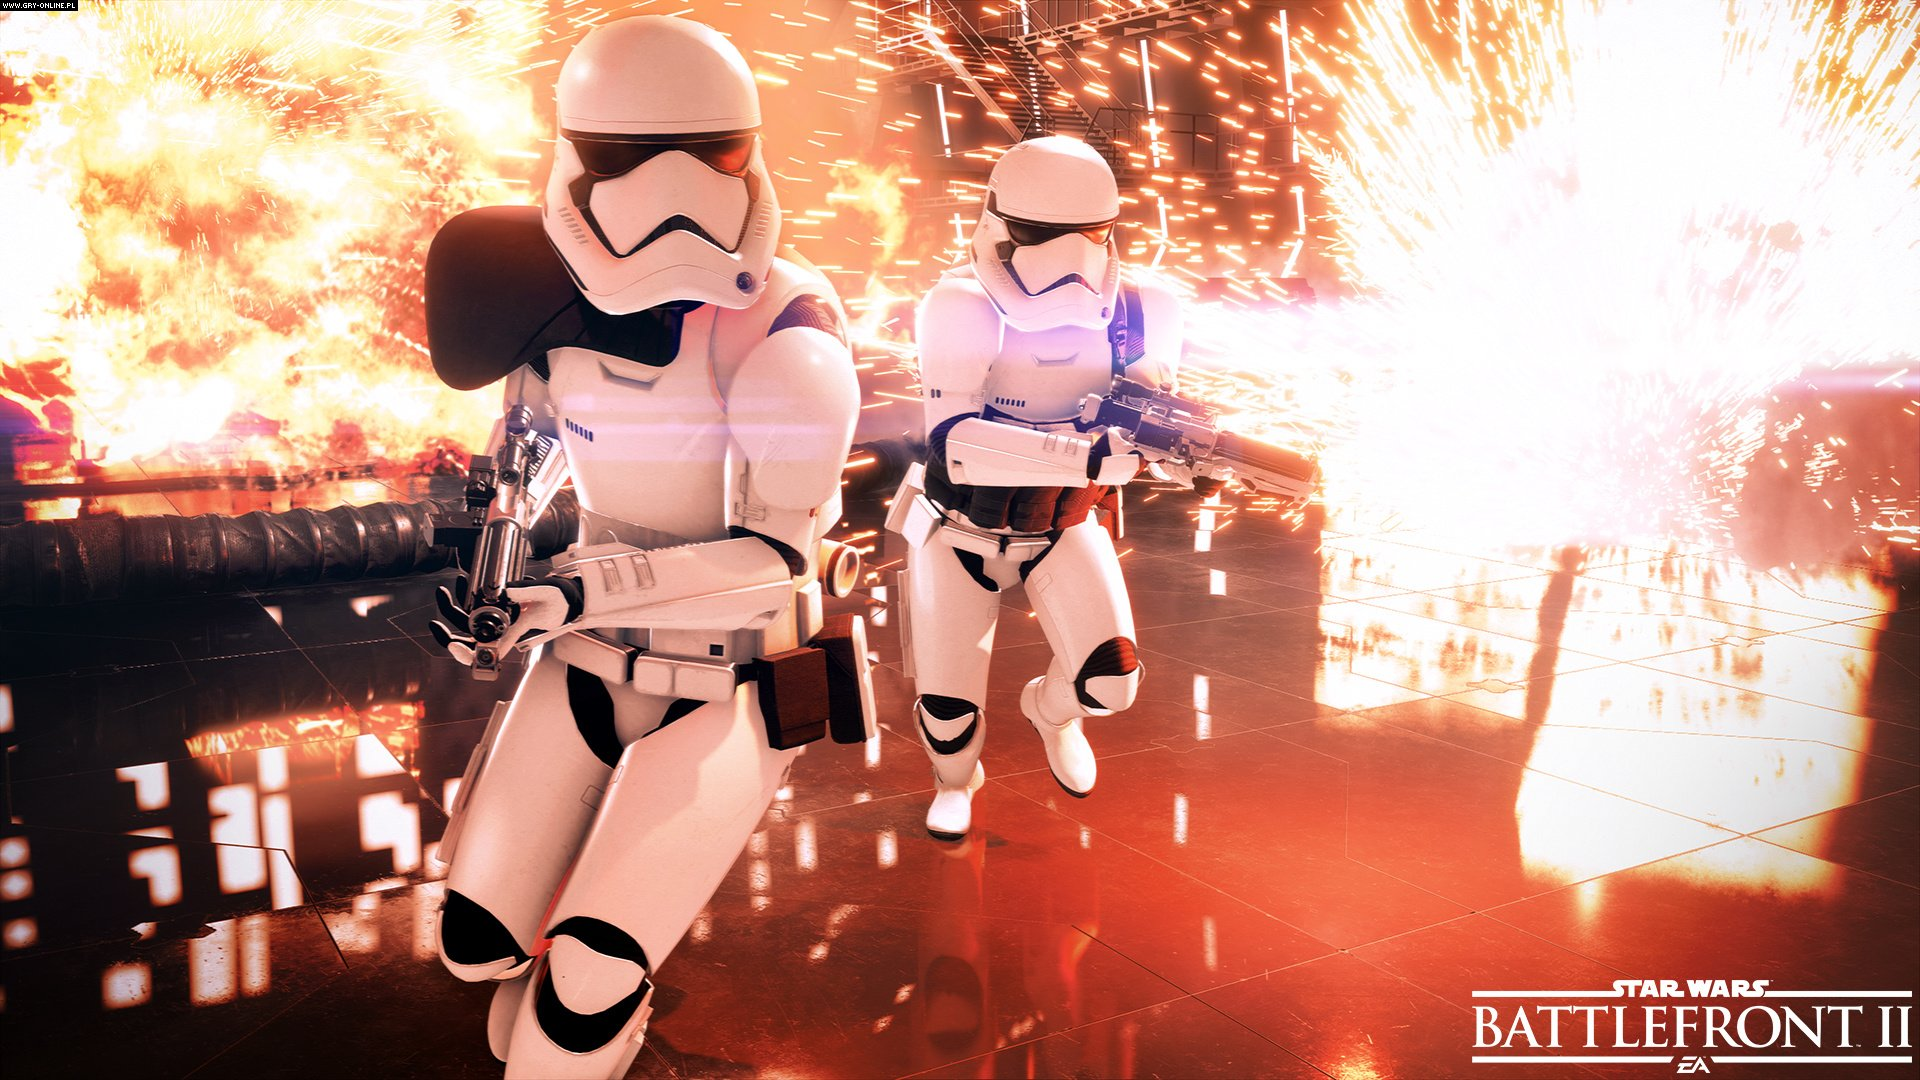 Star Wars: Battlefront II PC, XONE, PS4 Games Image 5/11, EA DICE / Digital Illusions CE, Electronic Arts Inc.